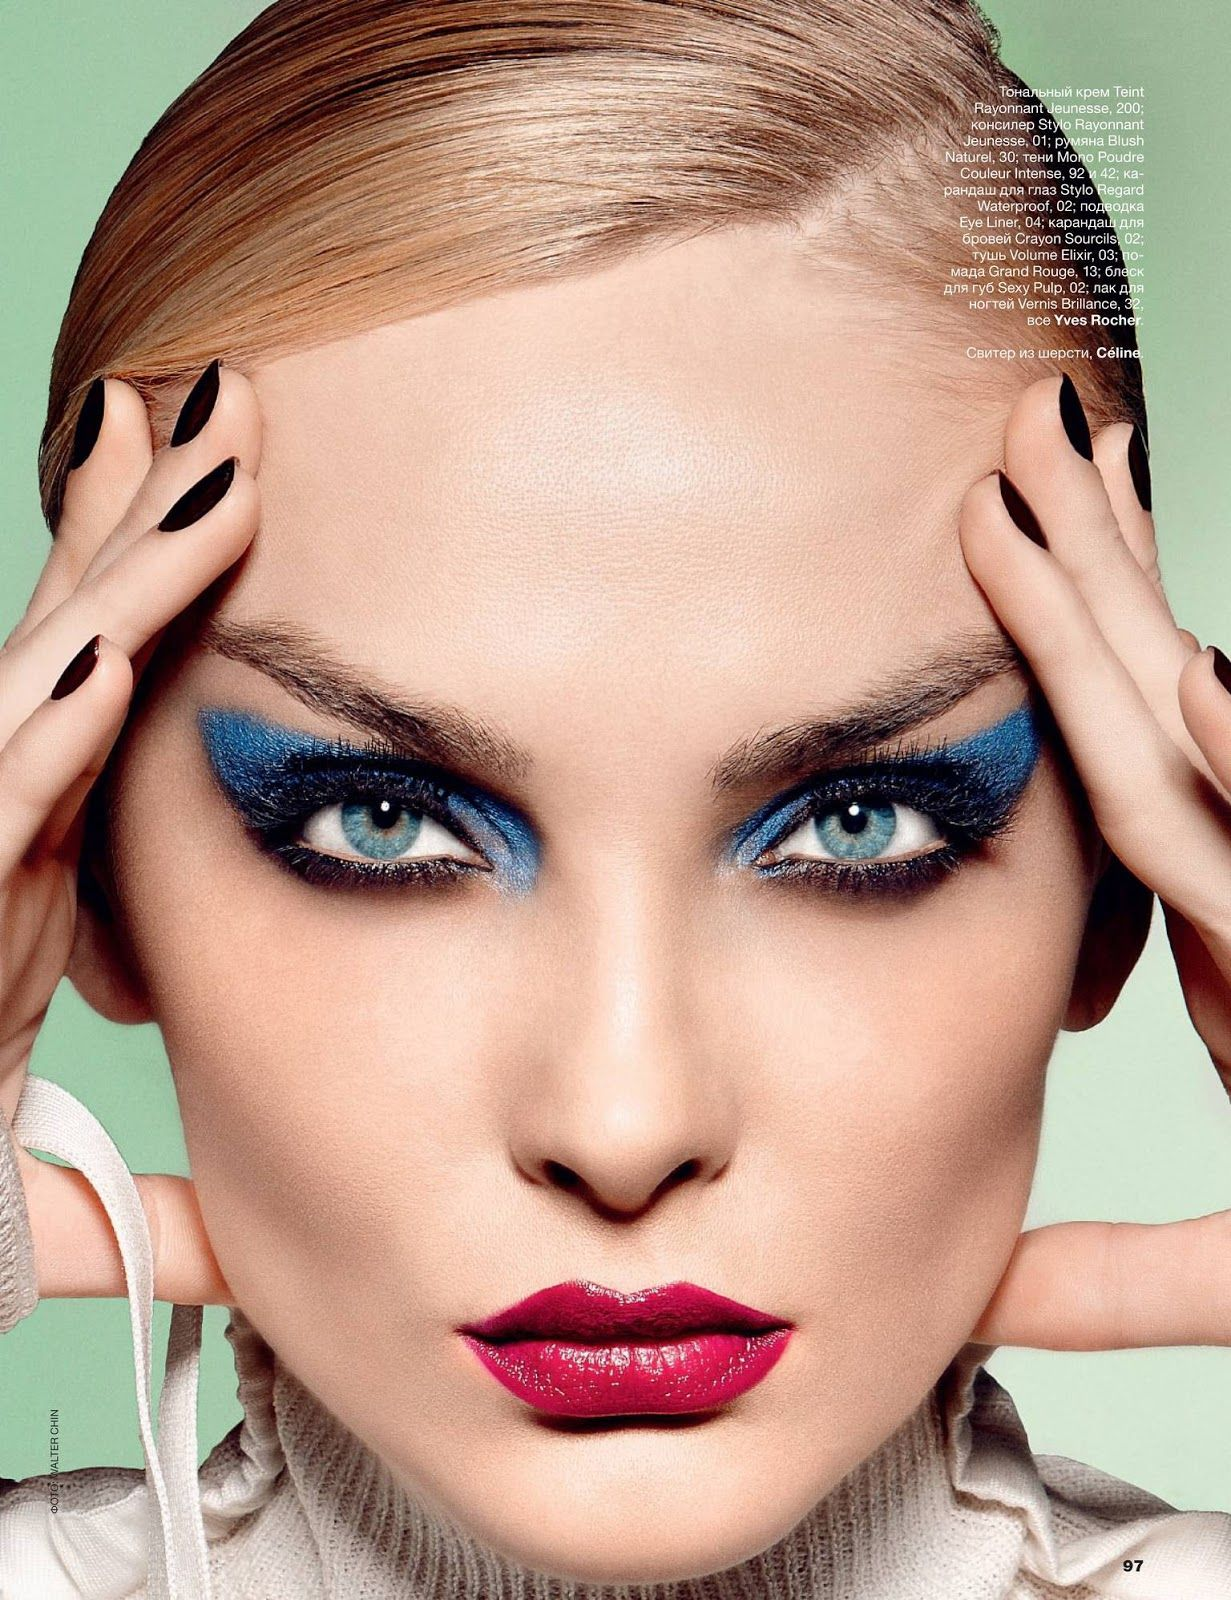 #Winged #eye #makeup #beauty snejana onopka by walter chin for allure russia february 2015